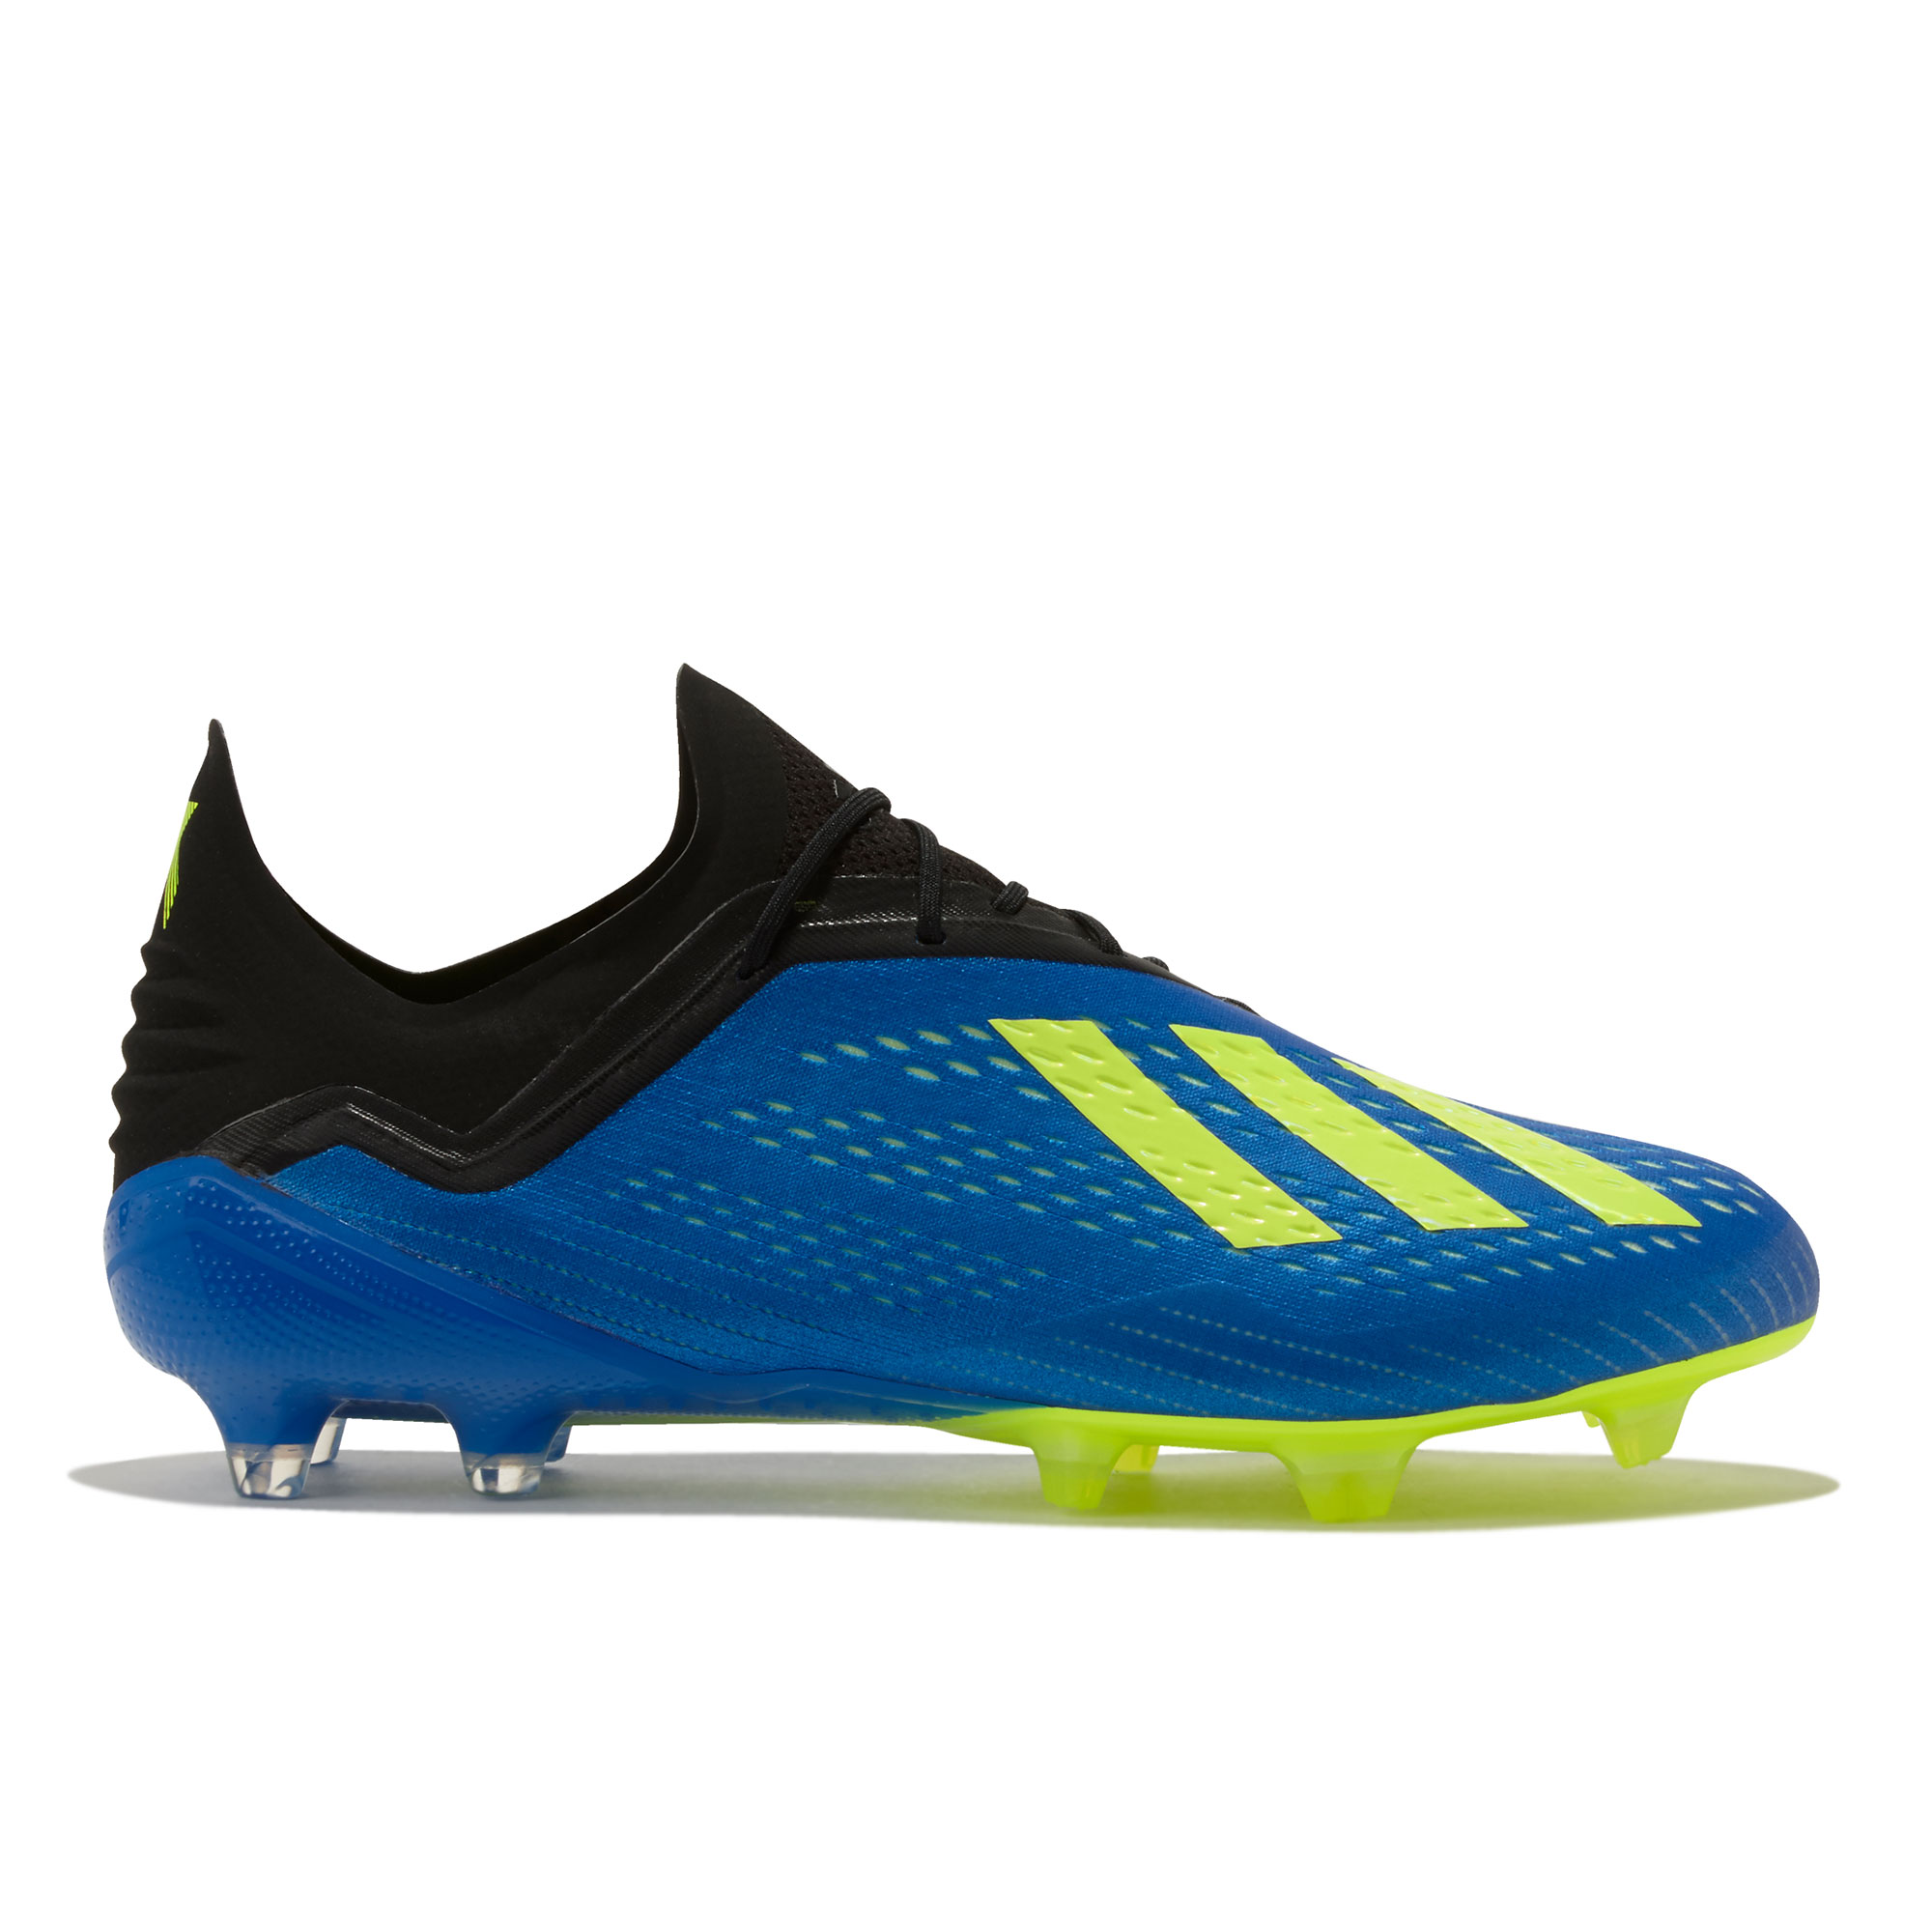 Image of adidas X 18.1 Firm Ground Football Boots - Blue